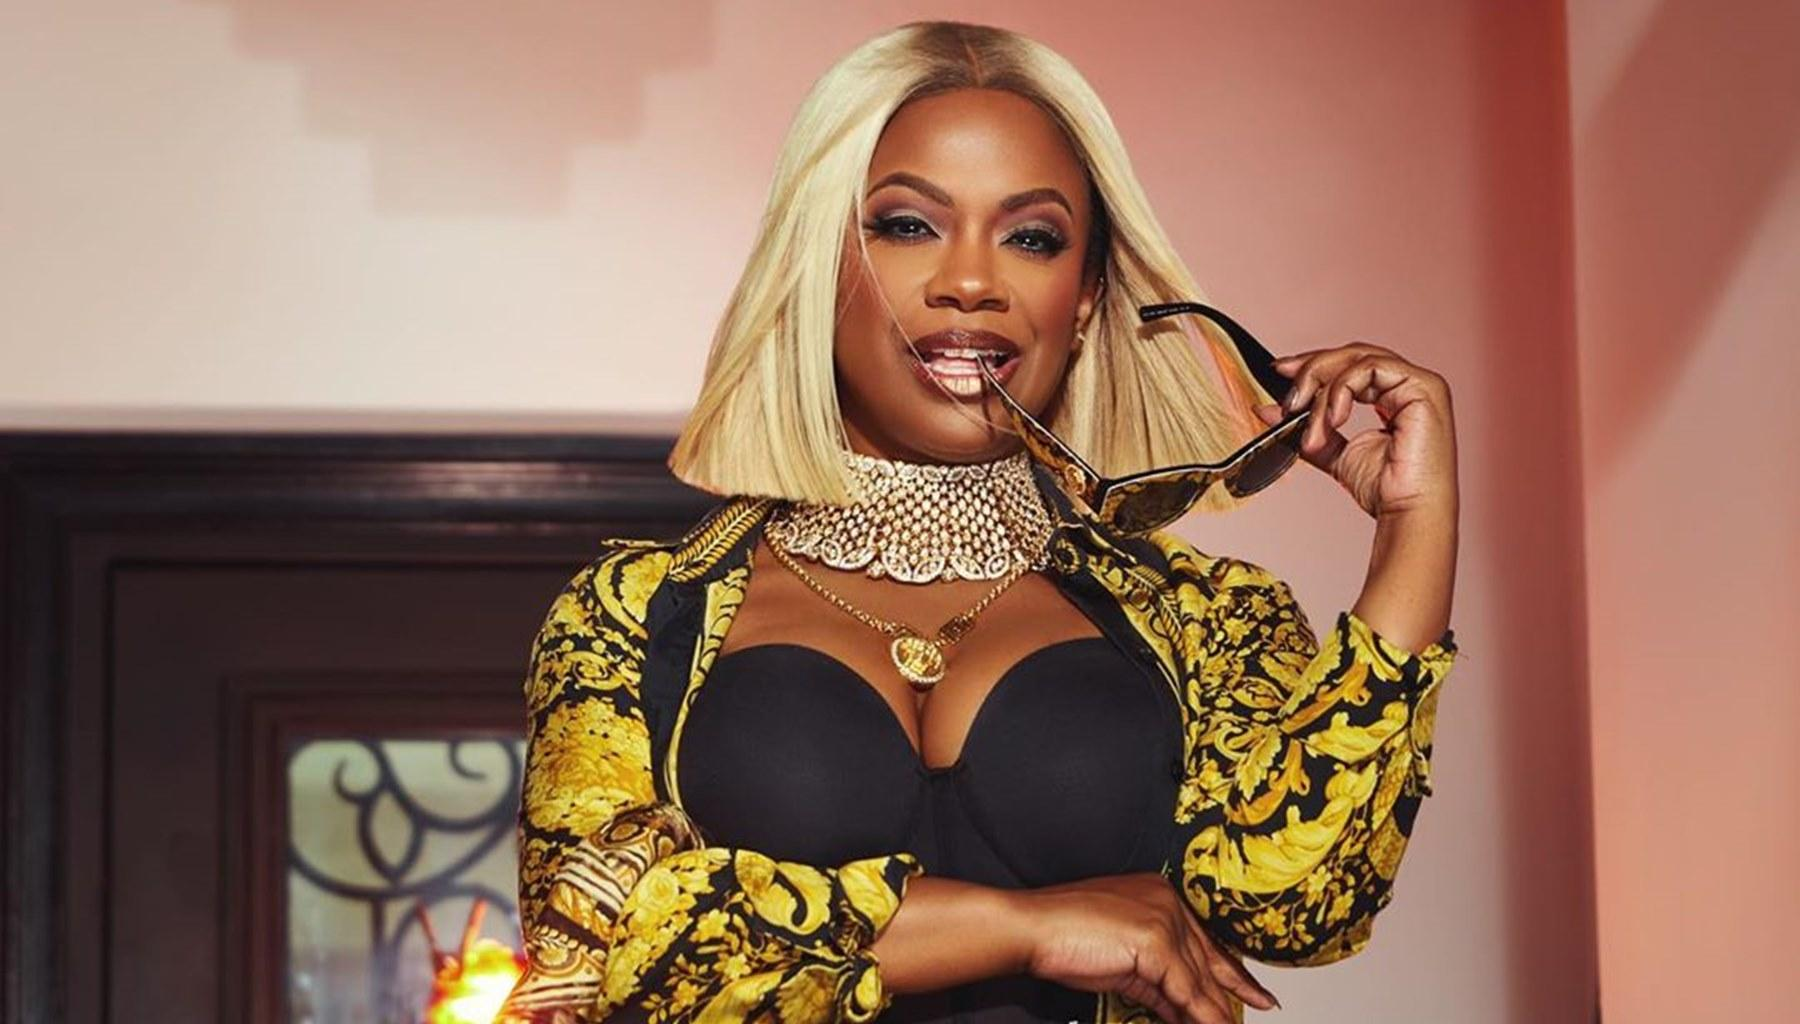 Kandi Burruss Is Unrecognizable In New Photos, The 'Real Housewives Of Atlanta' Star Drastically Changed Her Fashion For This Reason